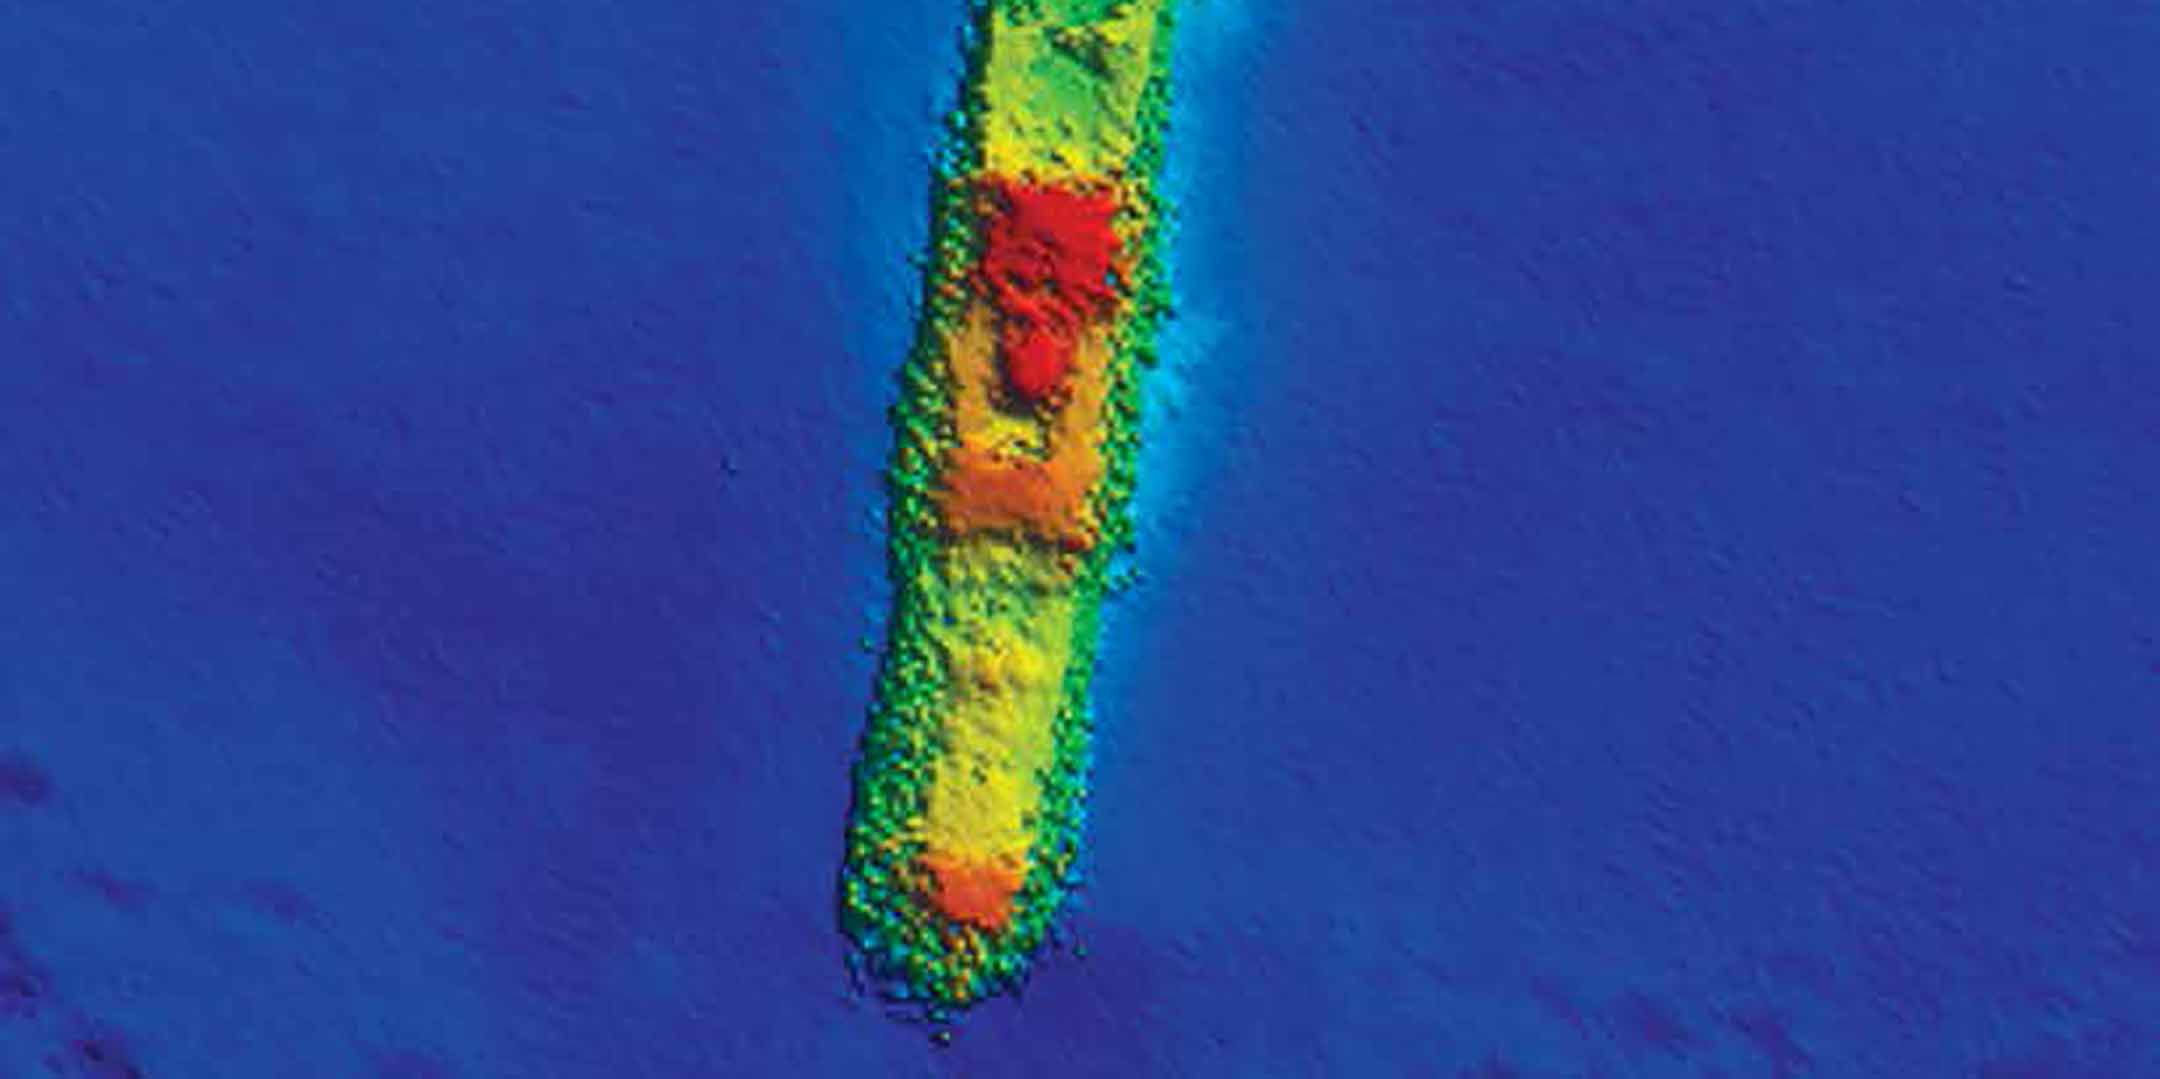 Multi-beam echo	sounder	image of SS Macumba. Image: CSIRO/Marine National Facility.